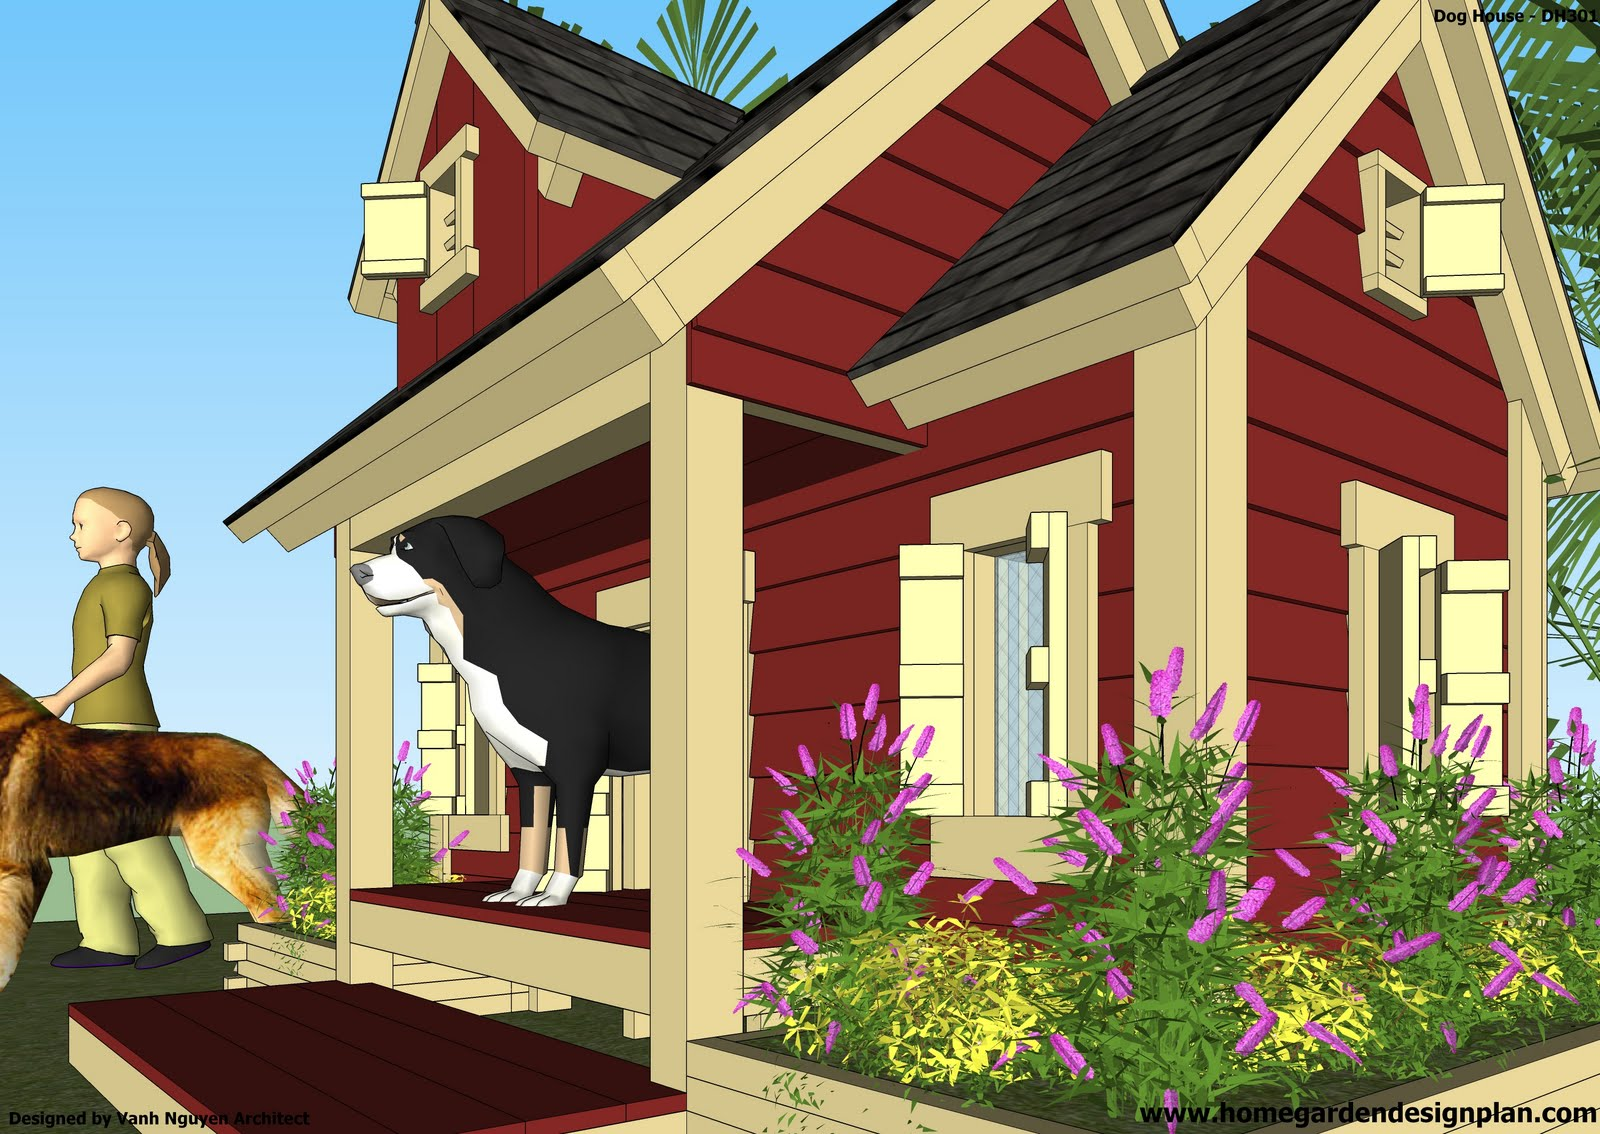 Home garden plans dh301 dog house plans how to build for Free house drawings